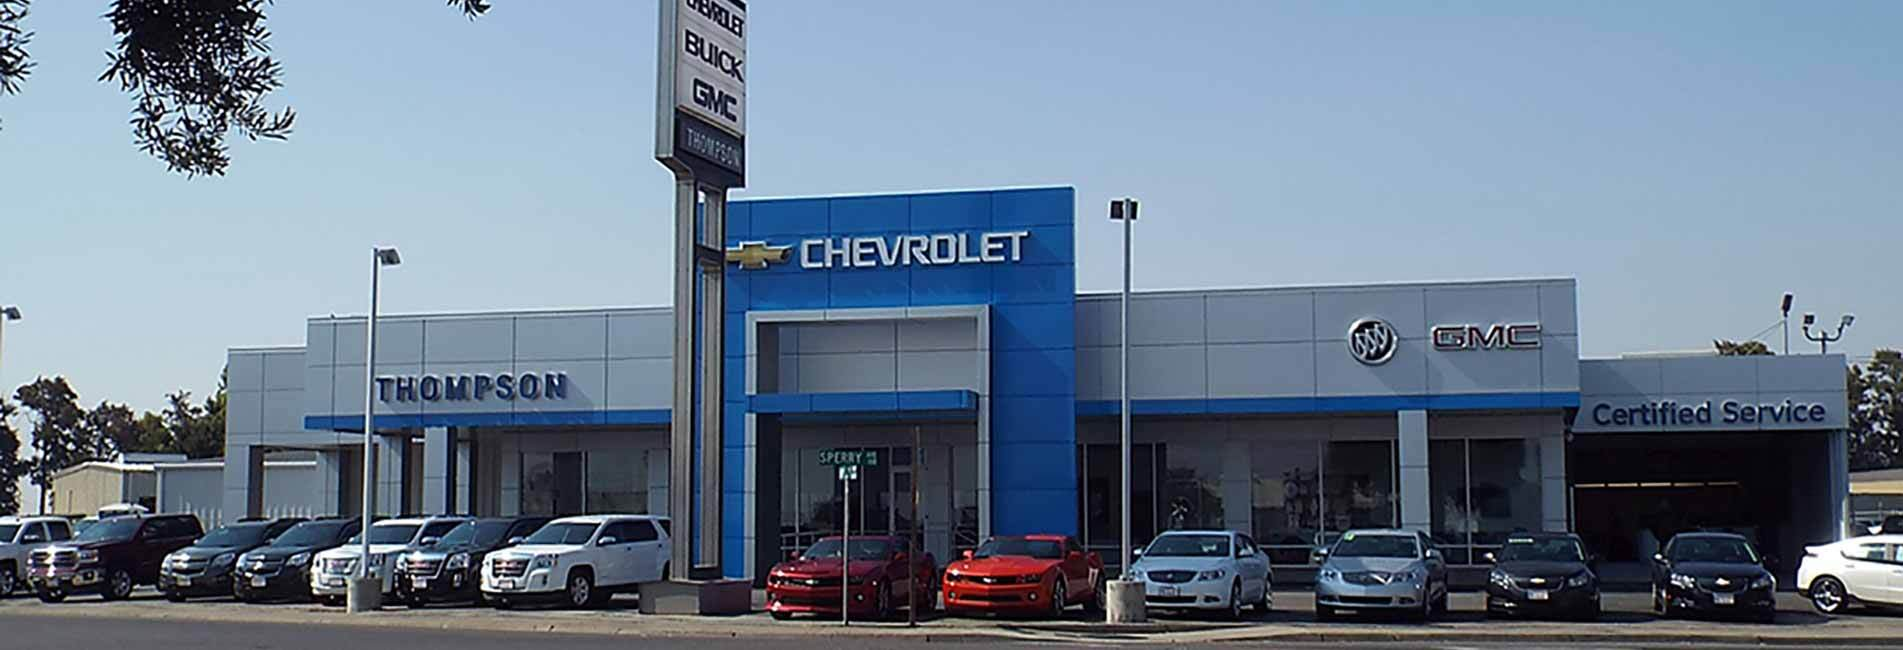 Welcome to Thompson Chevrolet Buick GMC